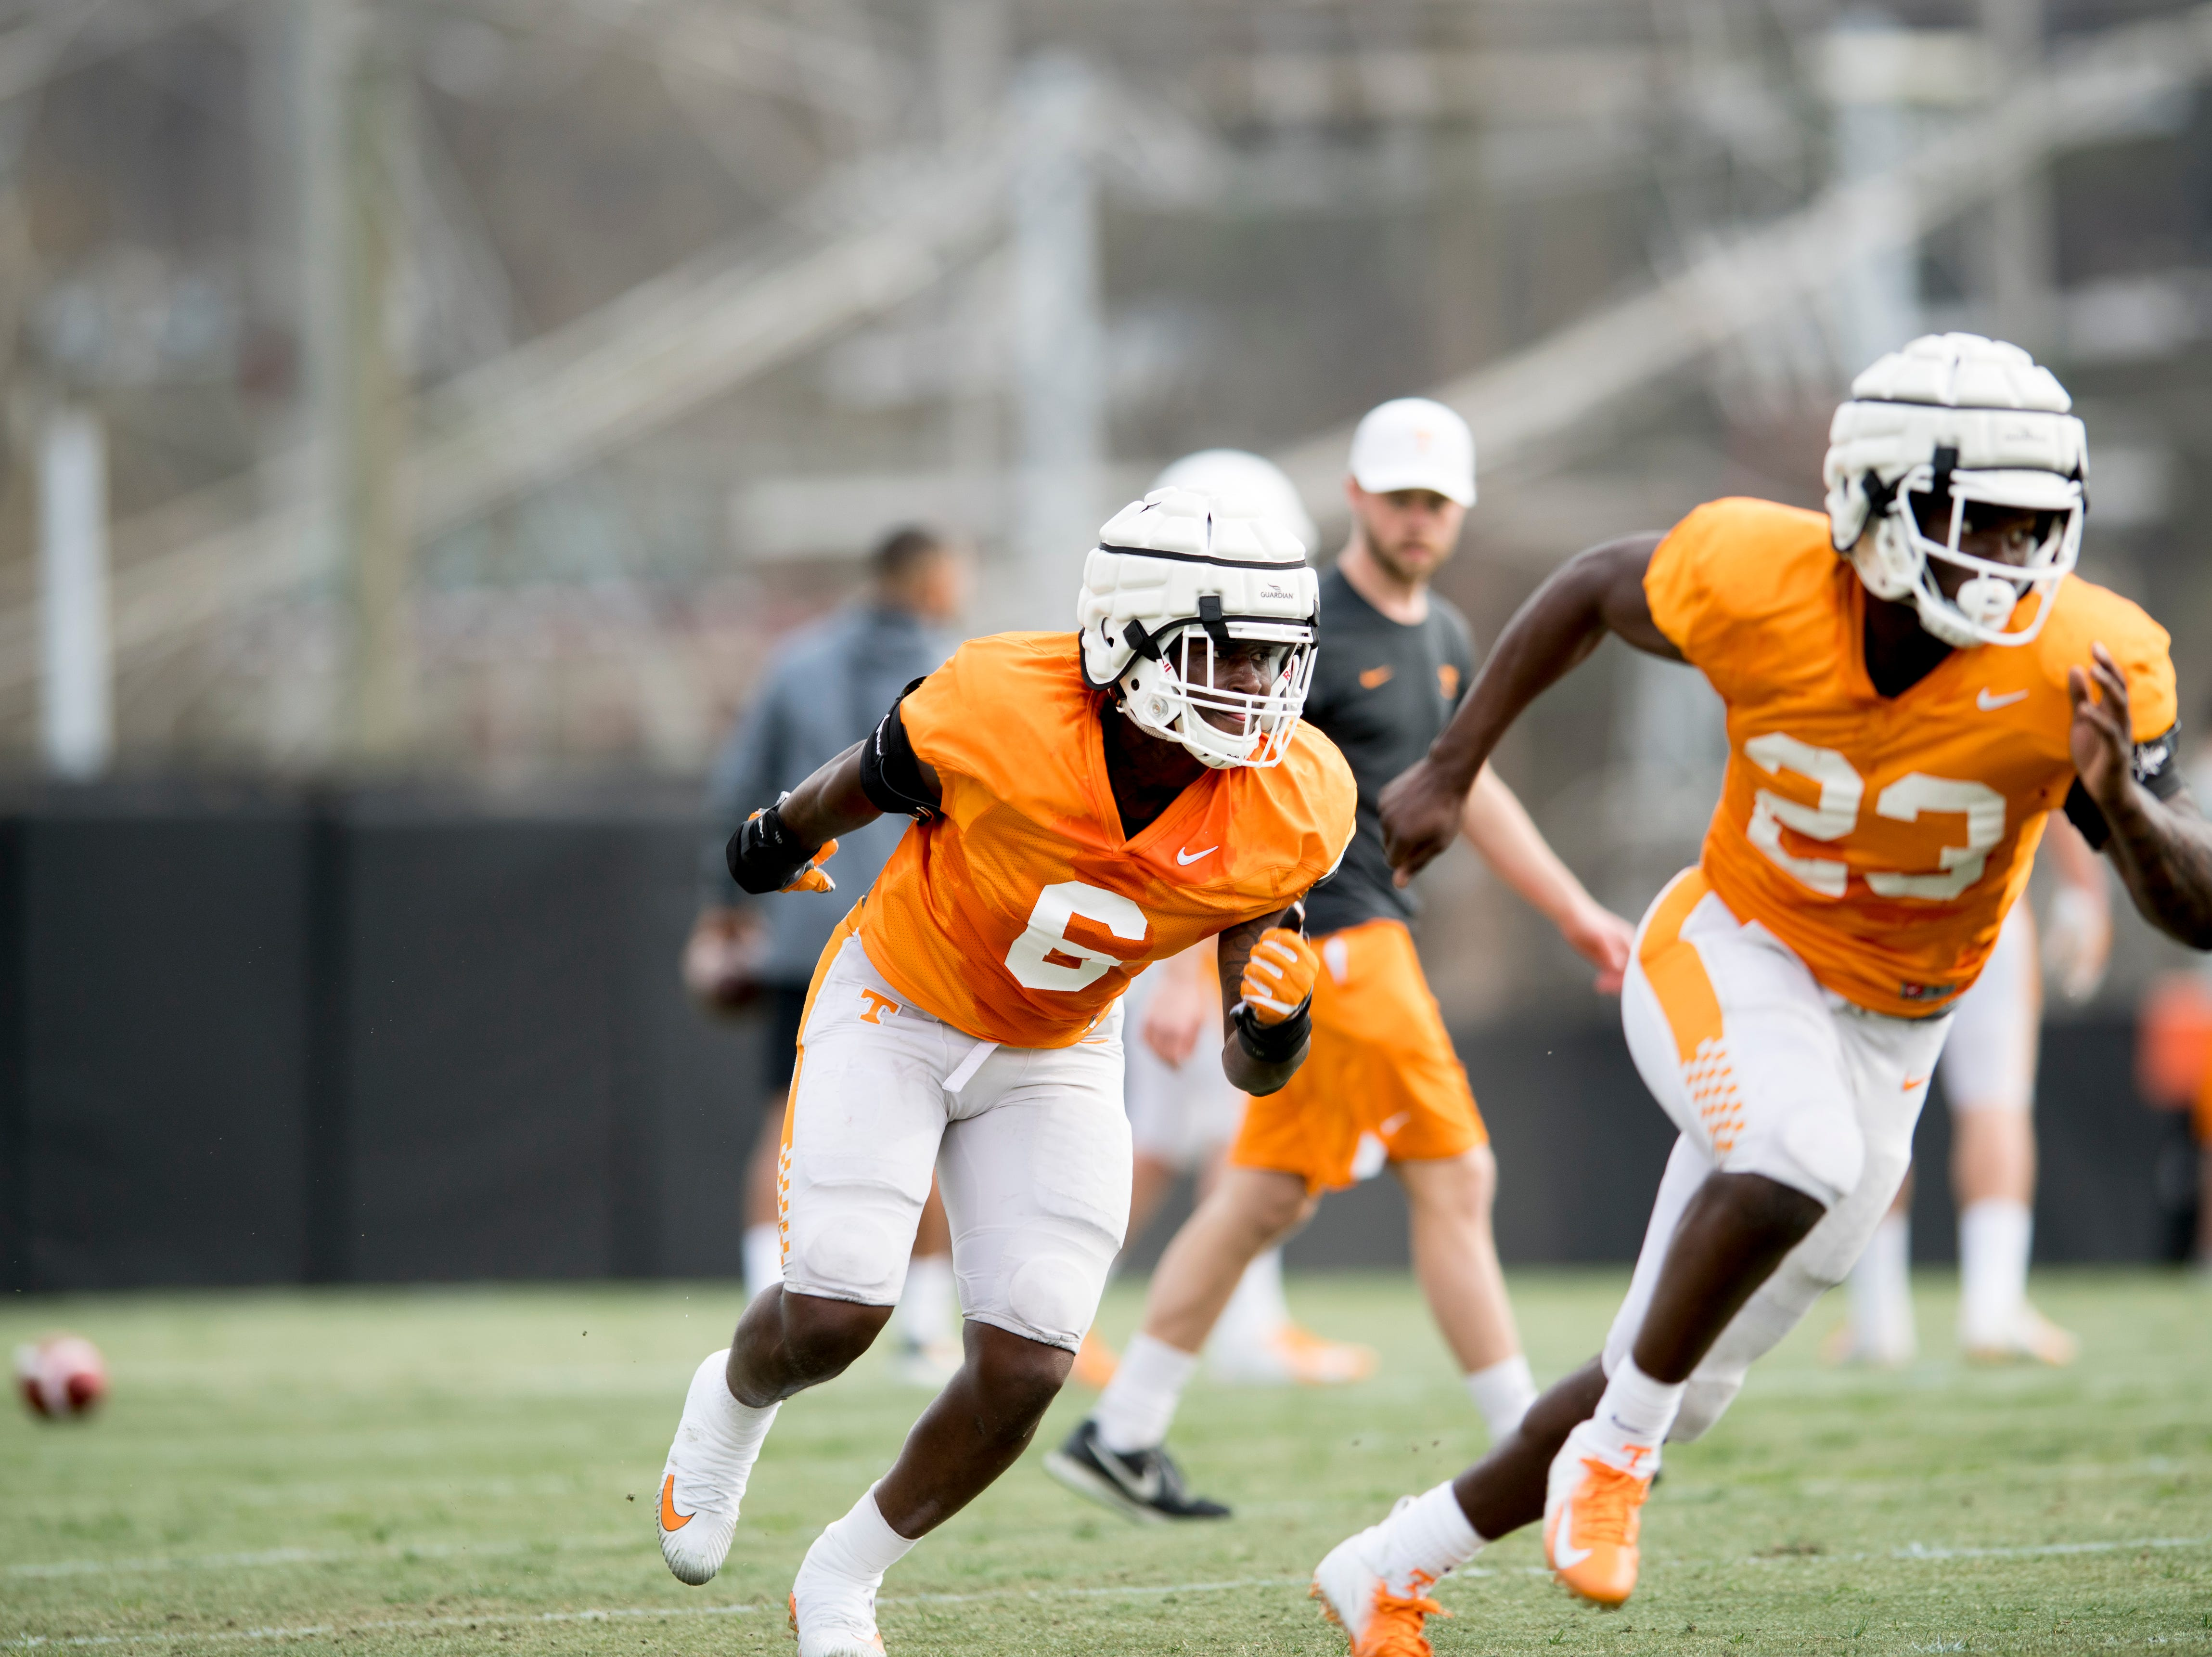 Tennessee linebackers JJ Peterson (6) and Will Ignot (23) run down the field during a drill during Tennessee spring football practice at  Haslam Field in Knoxville, Tennessee on Wednesday, March 13, 2019.